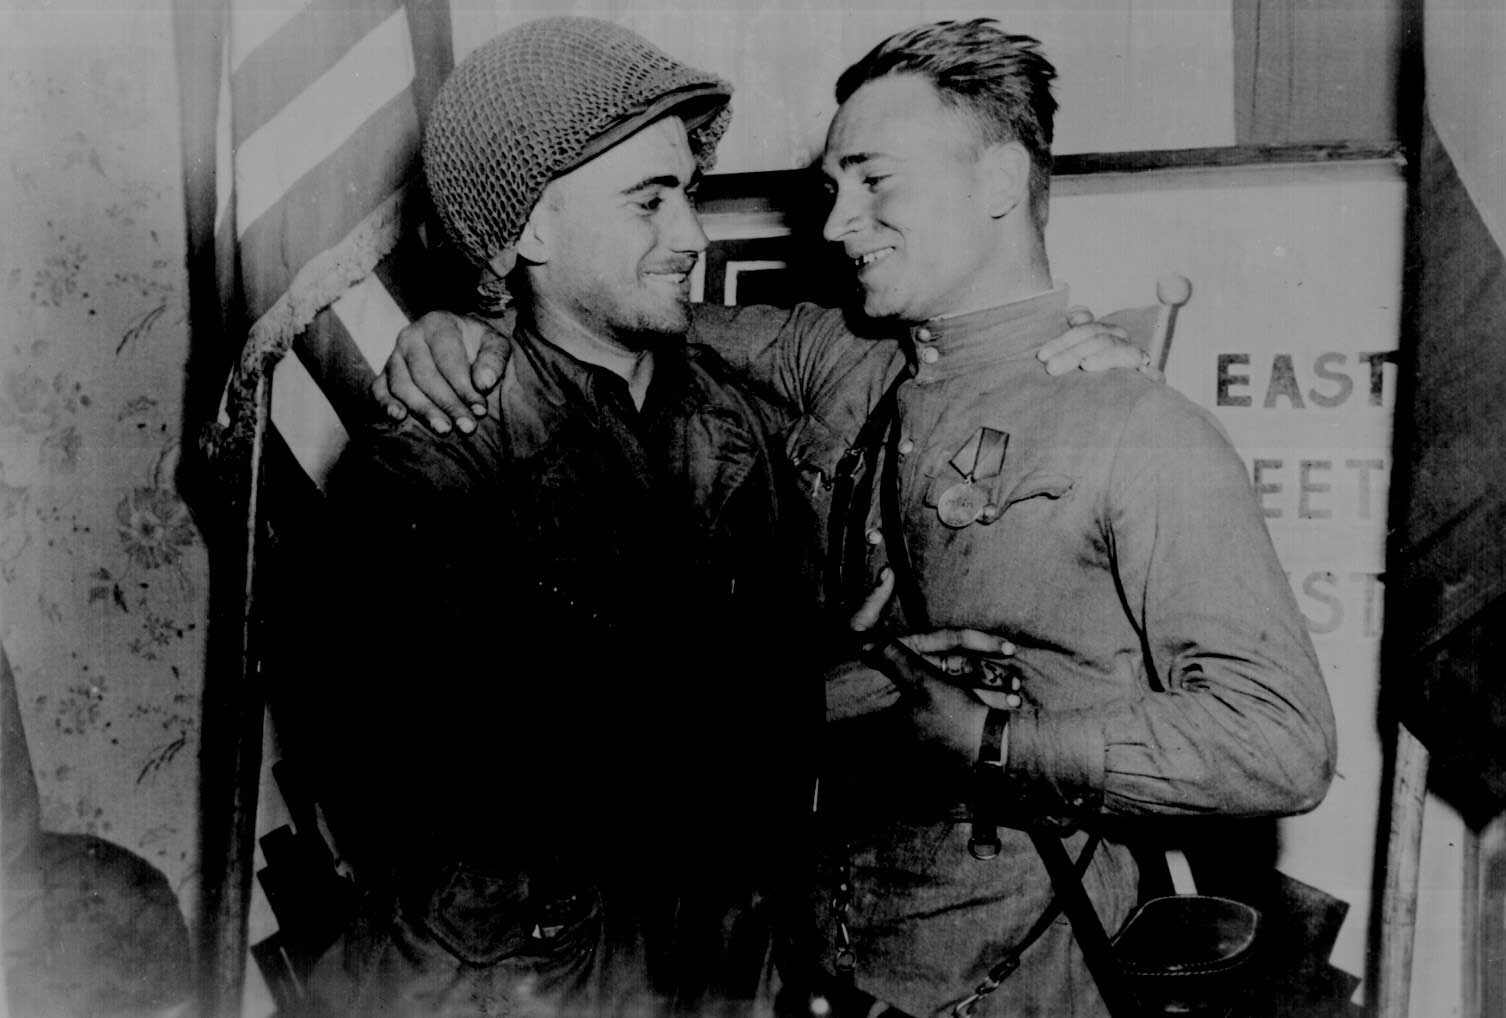 US soldier 2nd Lt. William Robertson and Soviet soldier Lt. Alexander Sylvashko met near Torgau, Germany, 25 Apr 1945 (US National Archives: 111-SC-205228)